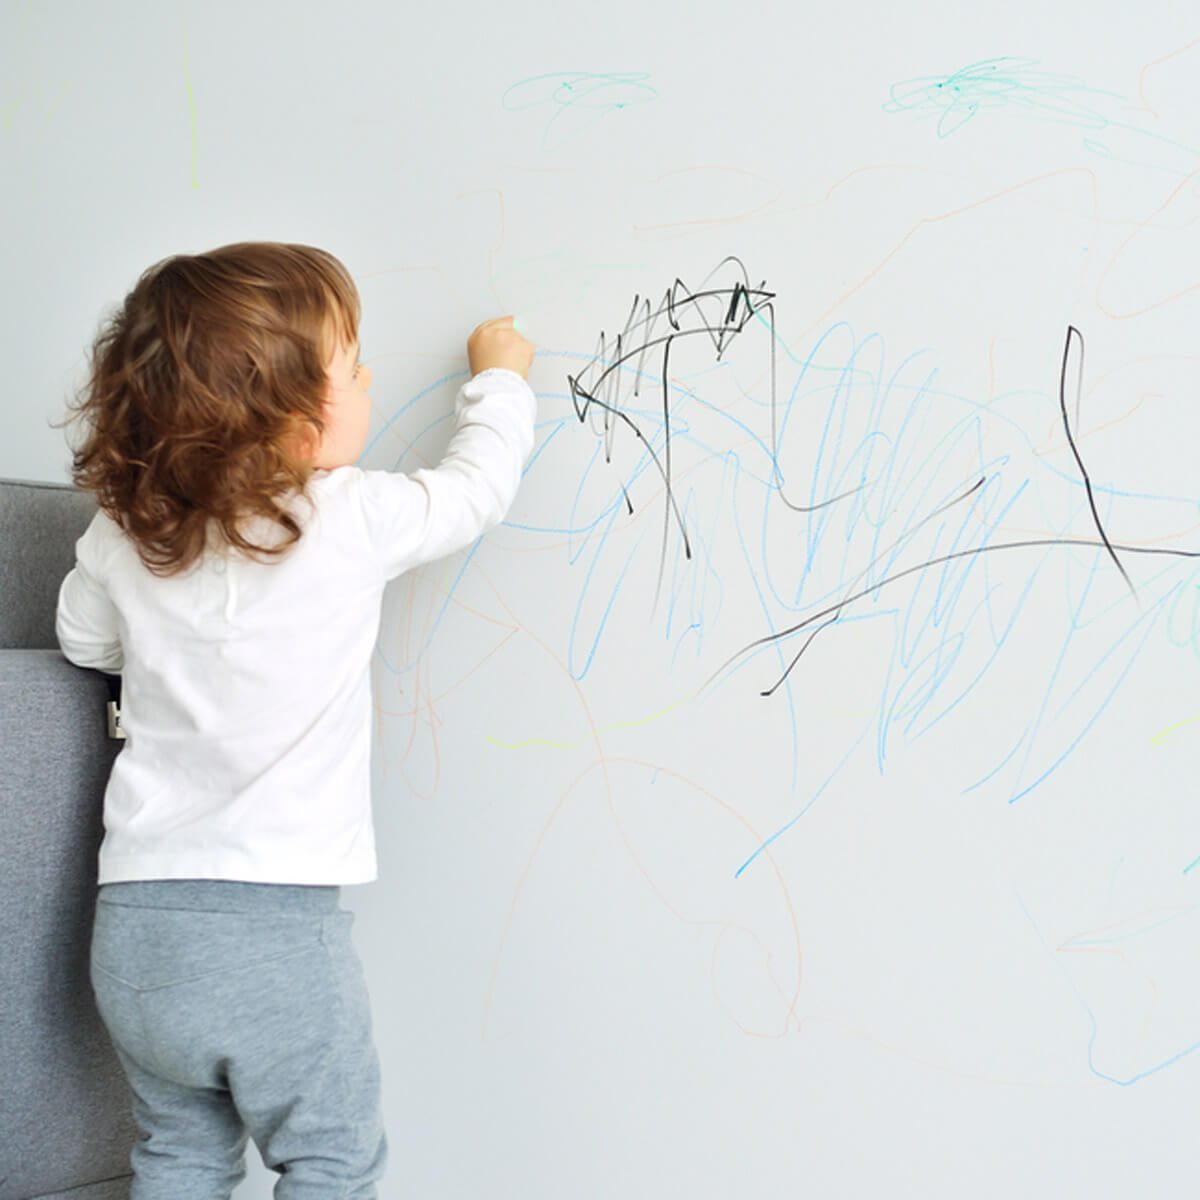 Kid drawing wall crayon marker